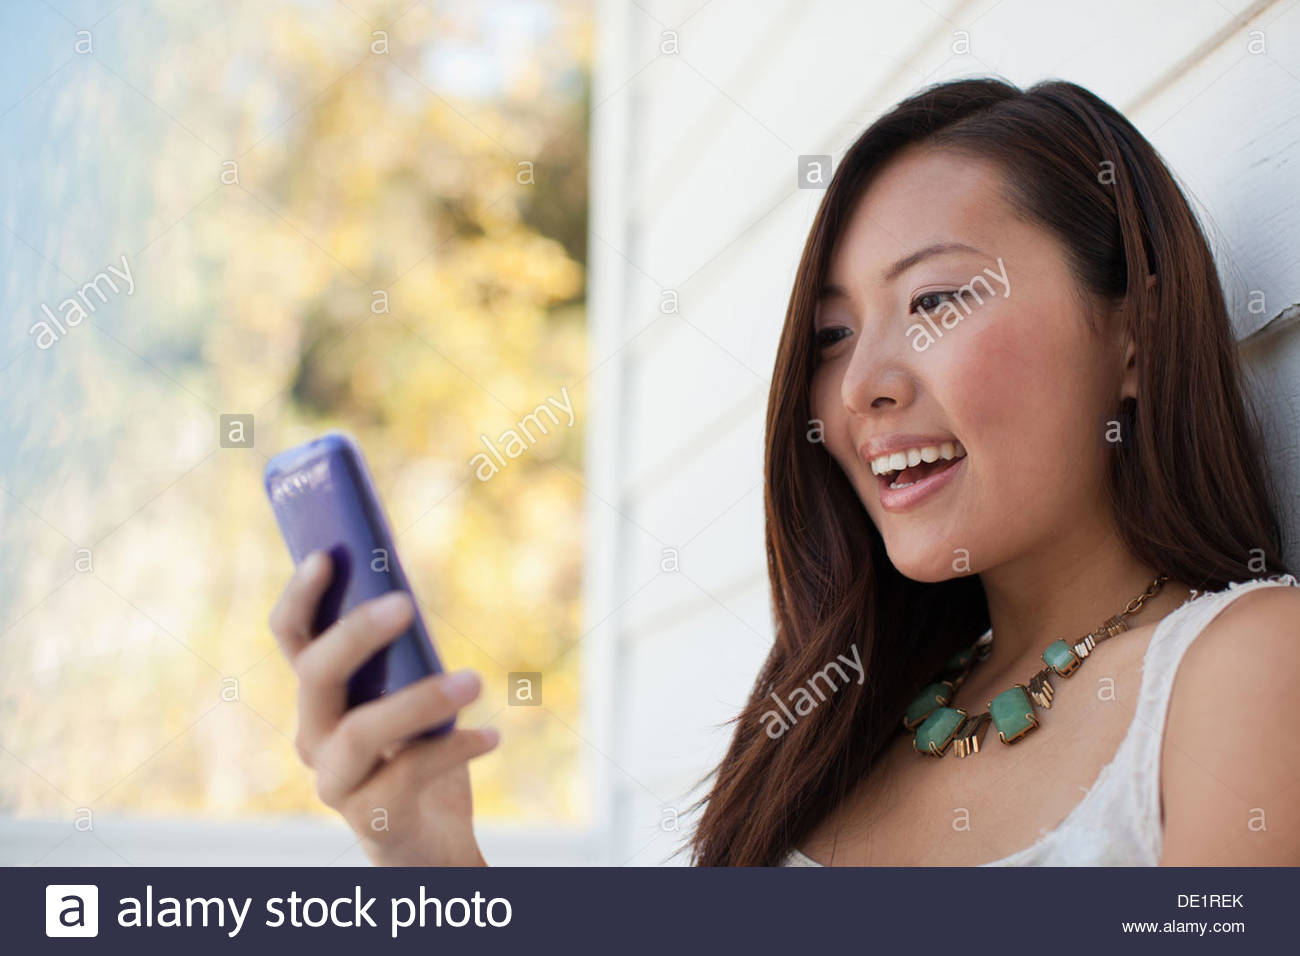 Smiling woman using cell phone outdoors Banque D'Images